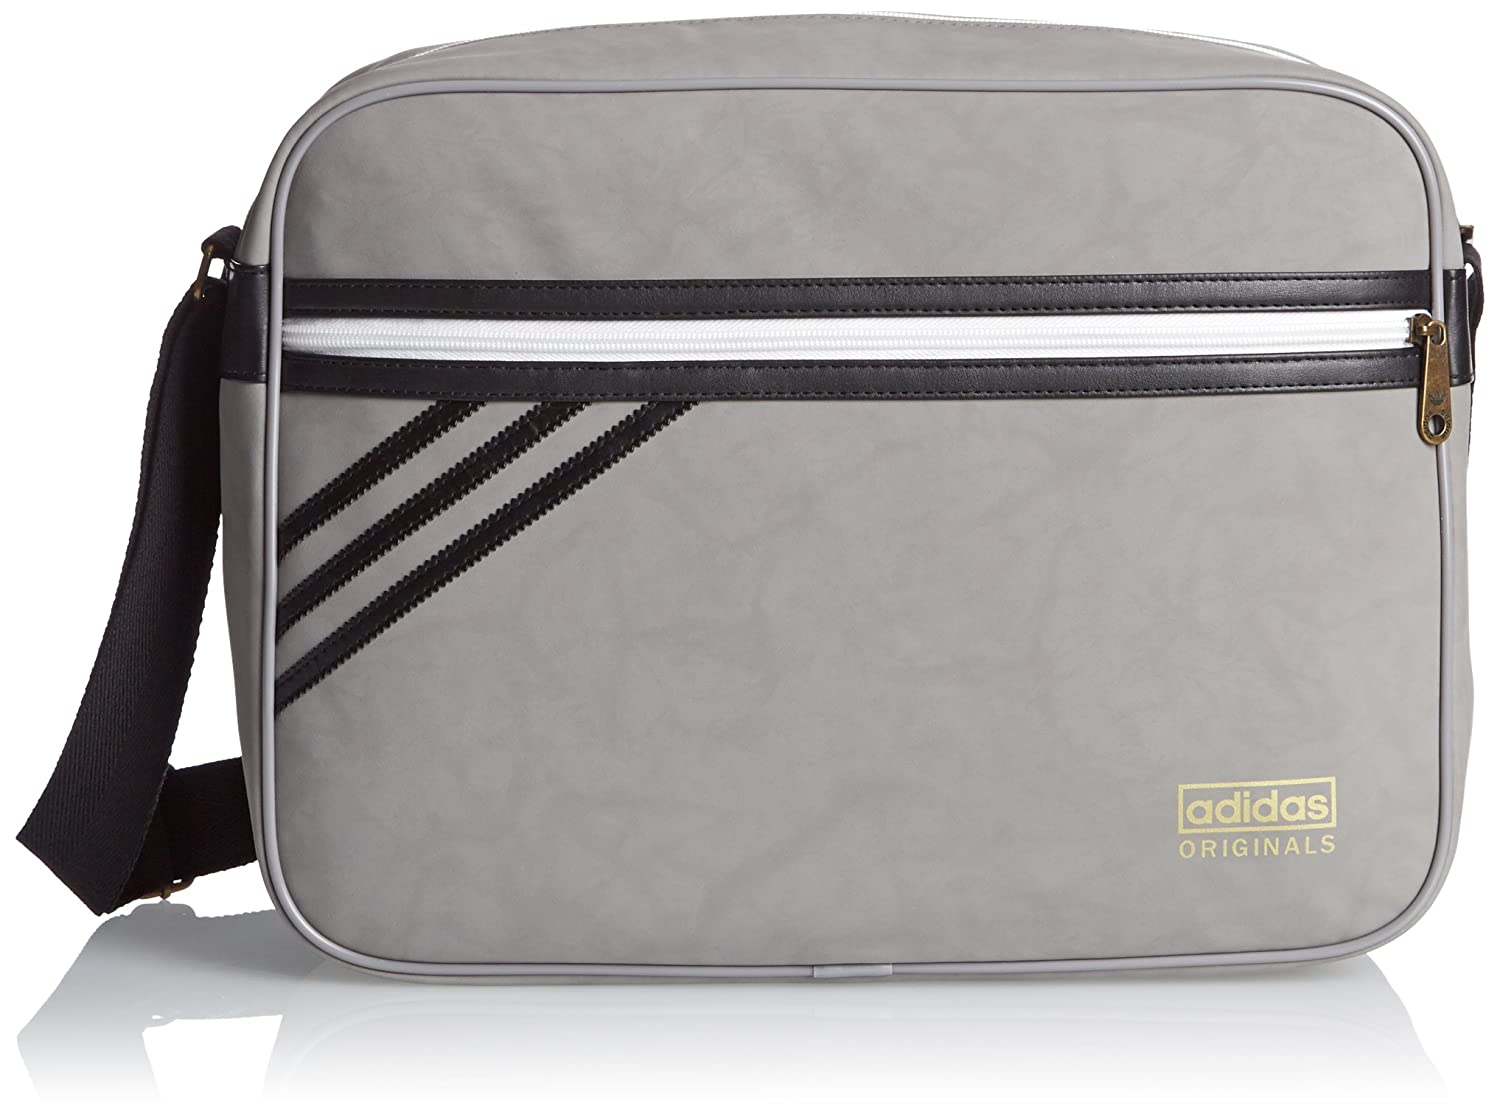 adidas Airliner Suede Bag - Solid Grey/Black, One Size: Amazon.co.uk: Sports & Outdoors